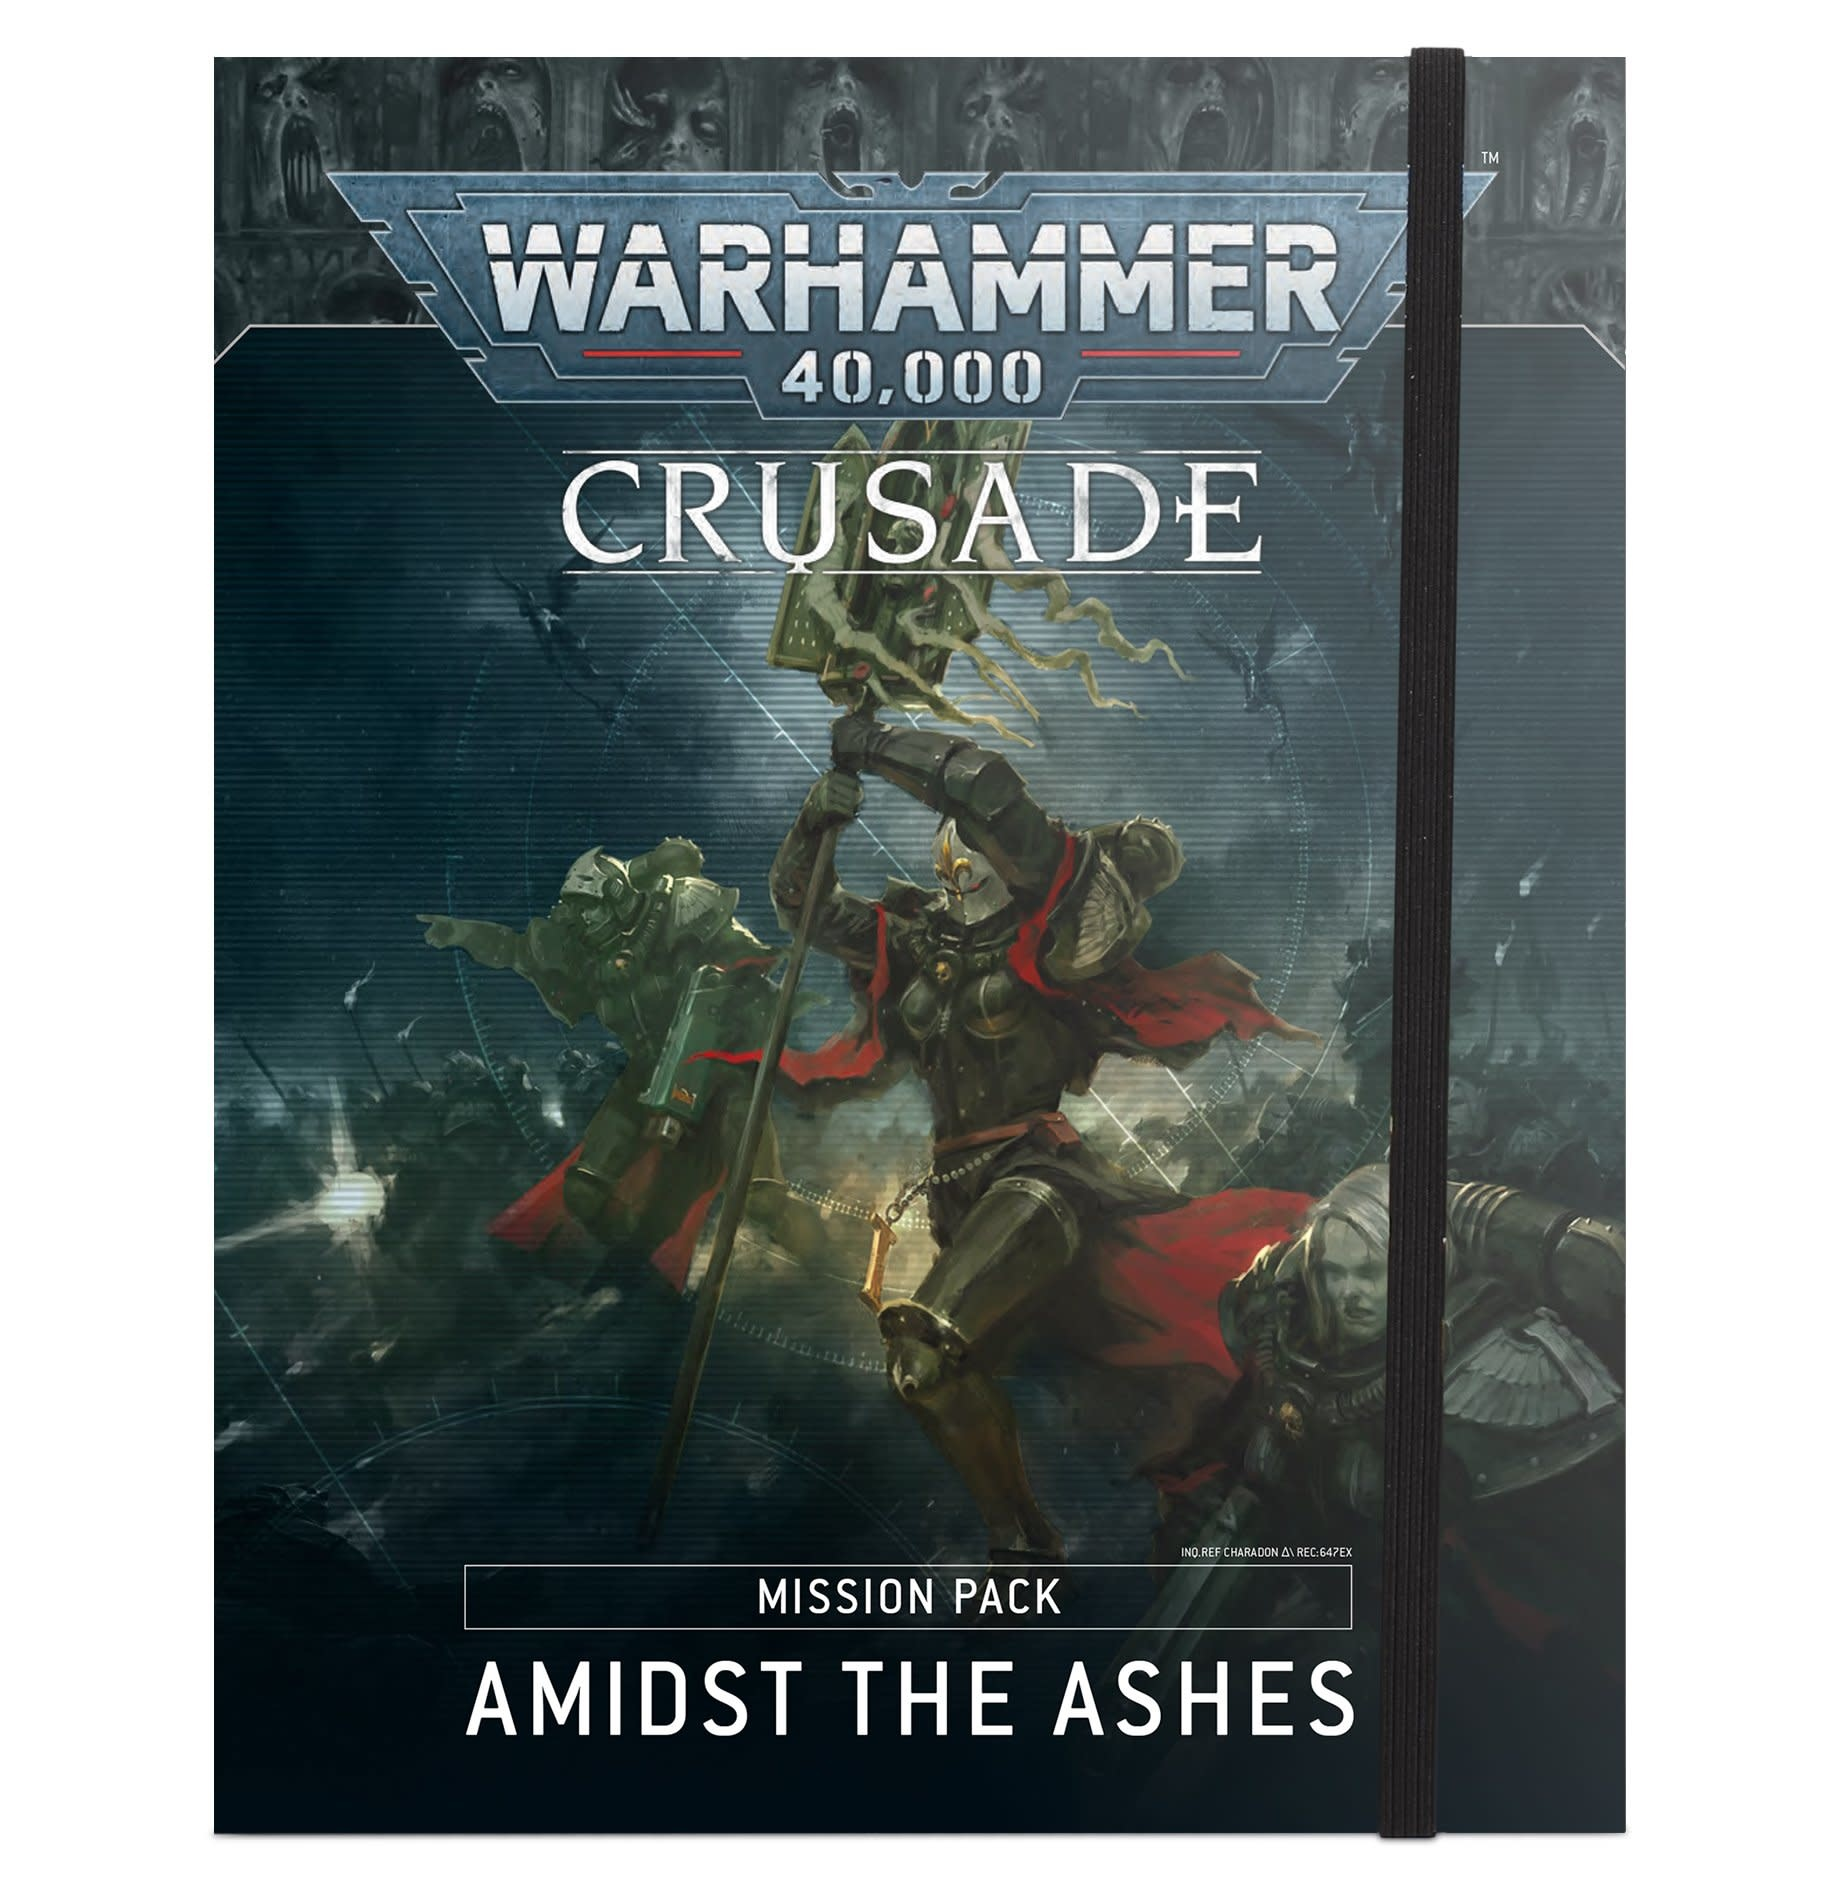 Crusade Mission Pack: Amidst the Ashes